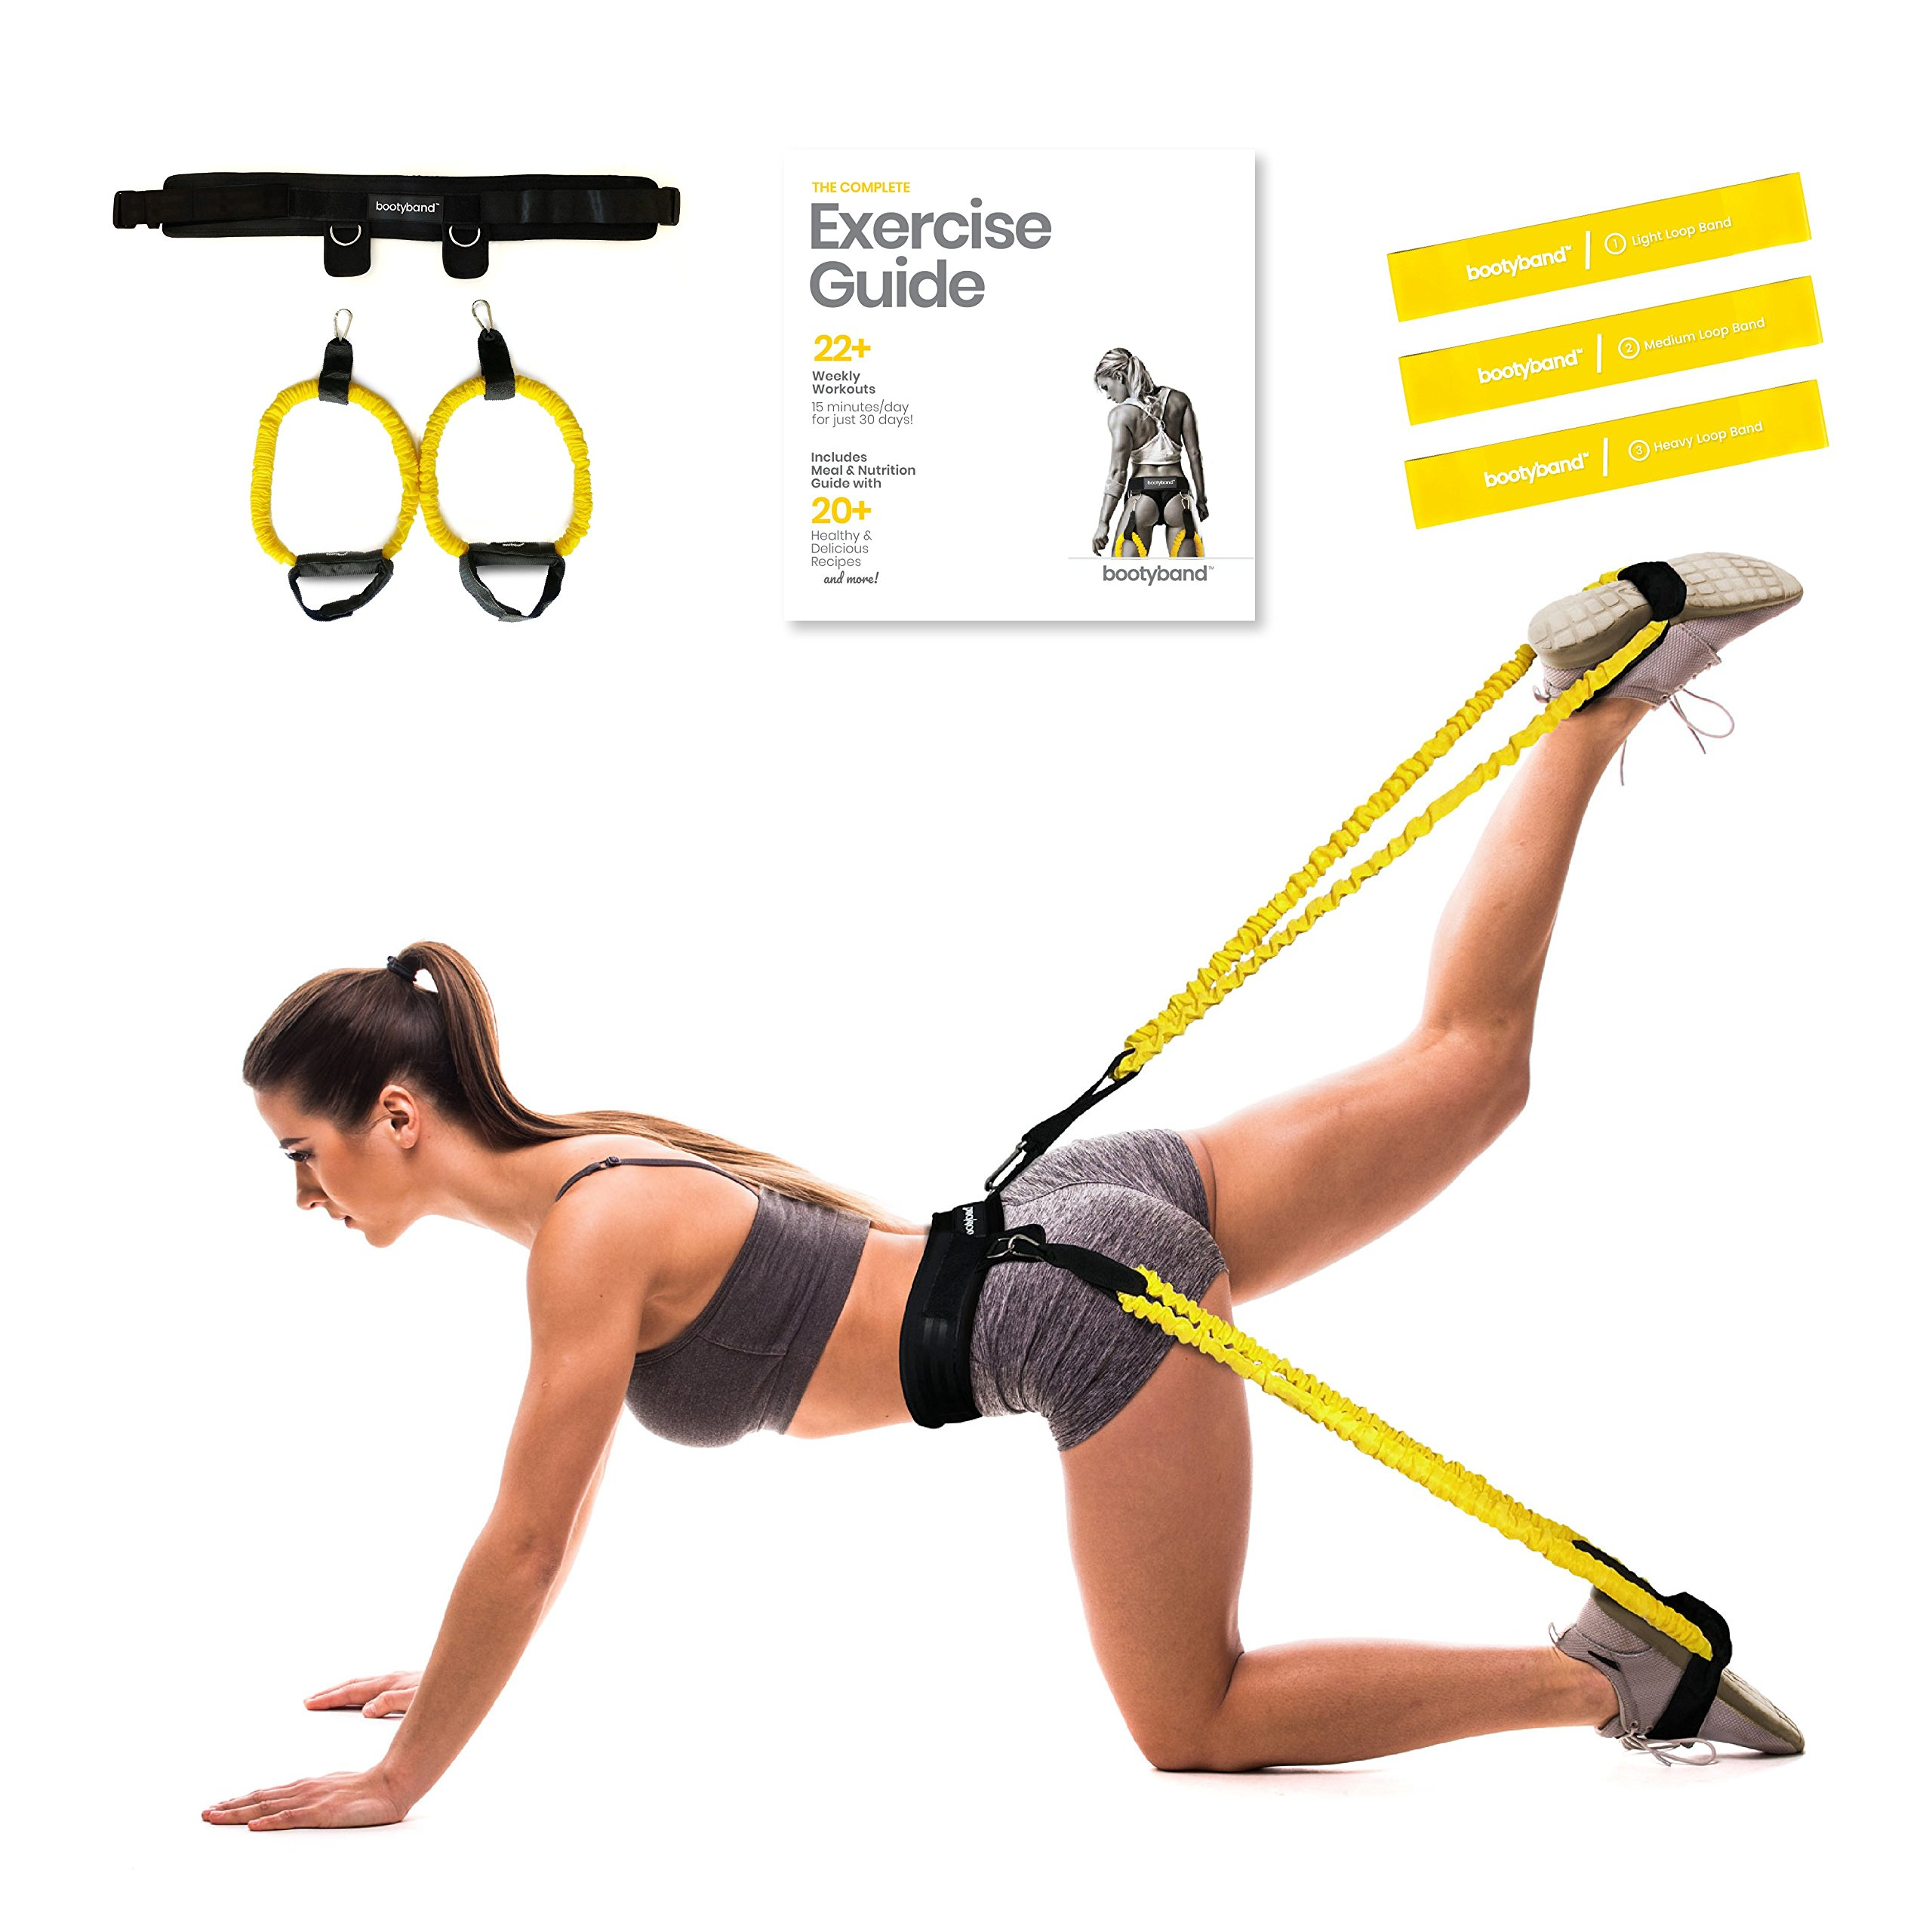 Booty Band Set - Booty Belt System for Glute Workout. Advanced Butt Lift Tool Includes Adjustable Waist Belt, 2 Tube Bands, 3 Mini Resistance Bands, Carry Bag and a Full Exercise Guide